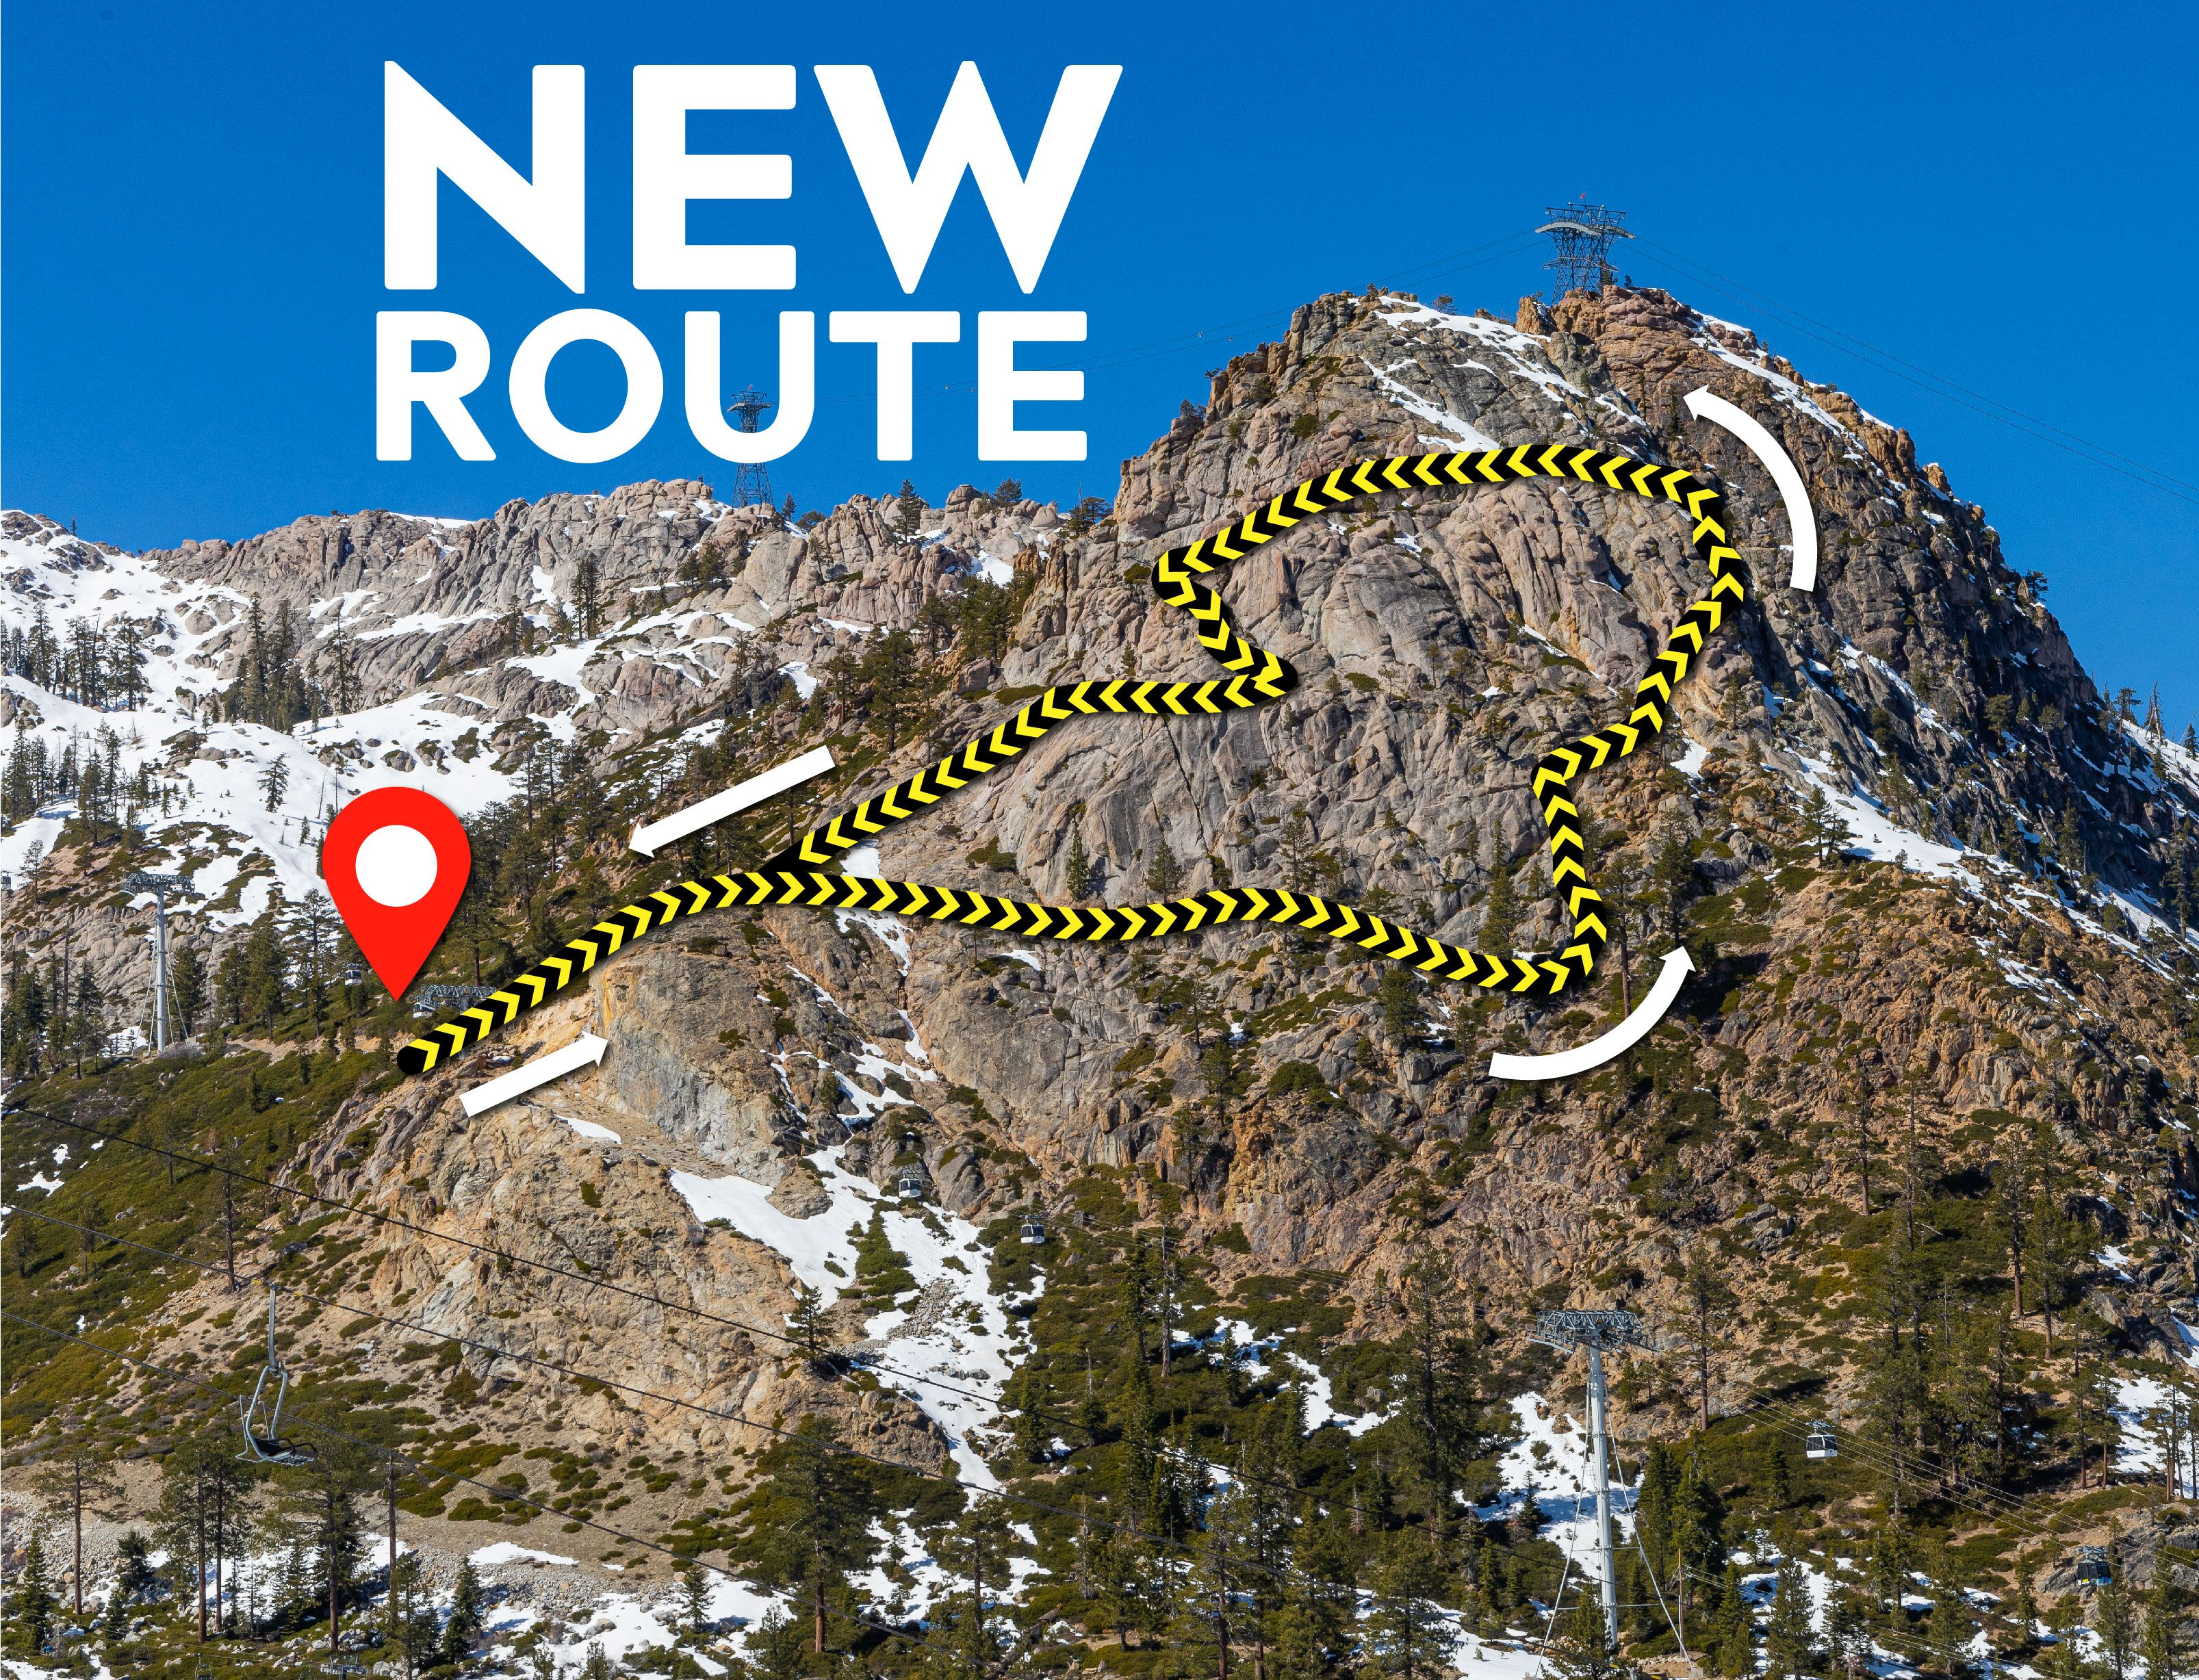 New Route on the Tahoe Via Ferrata